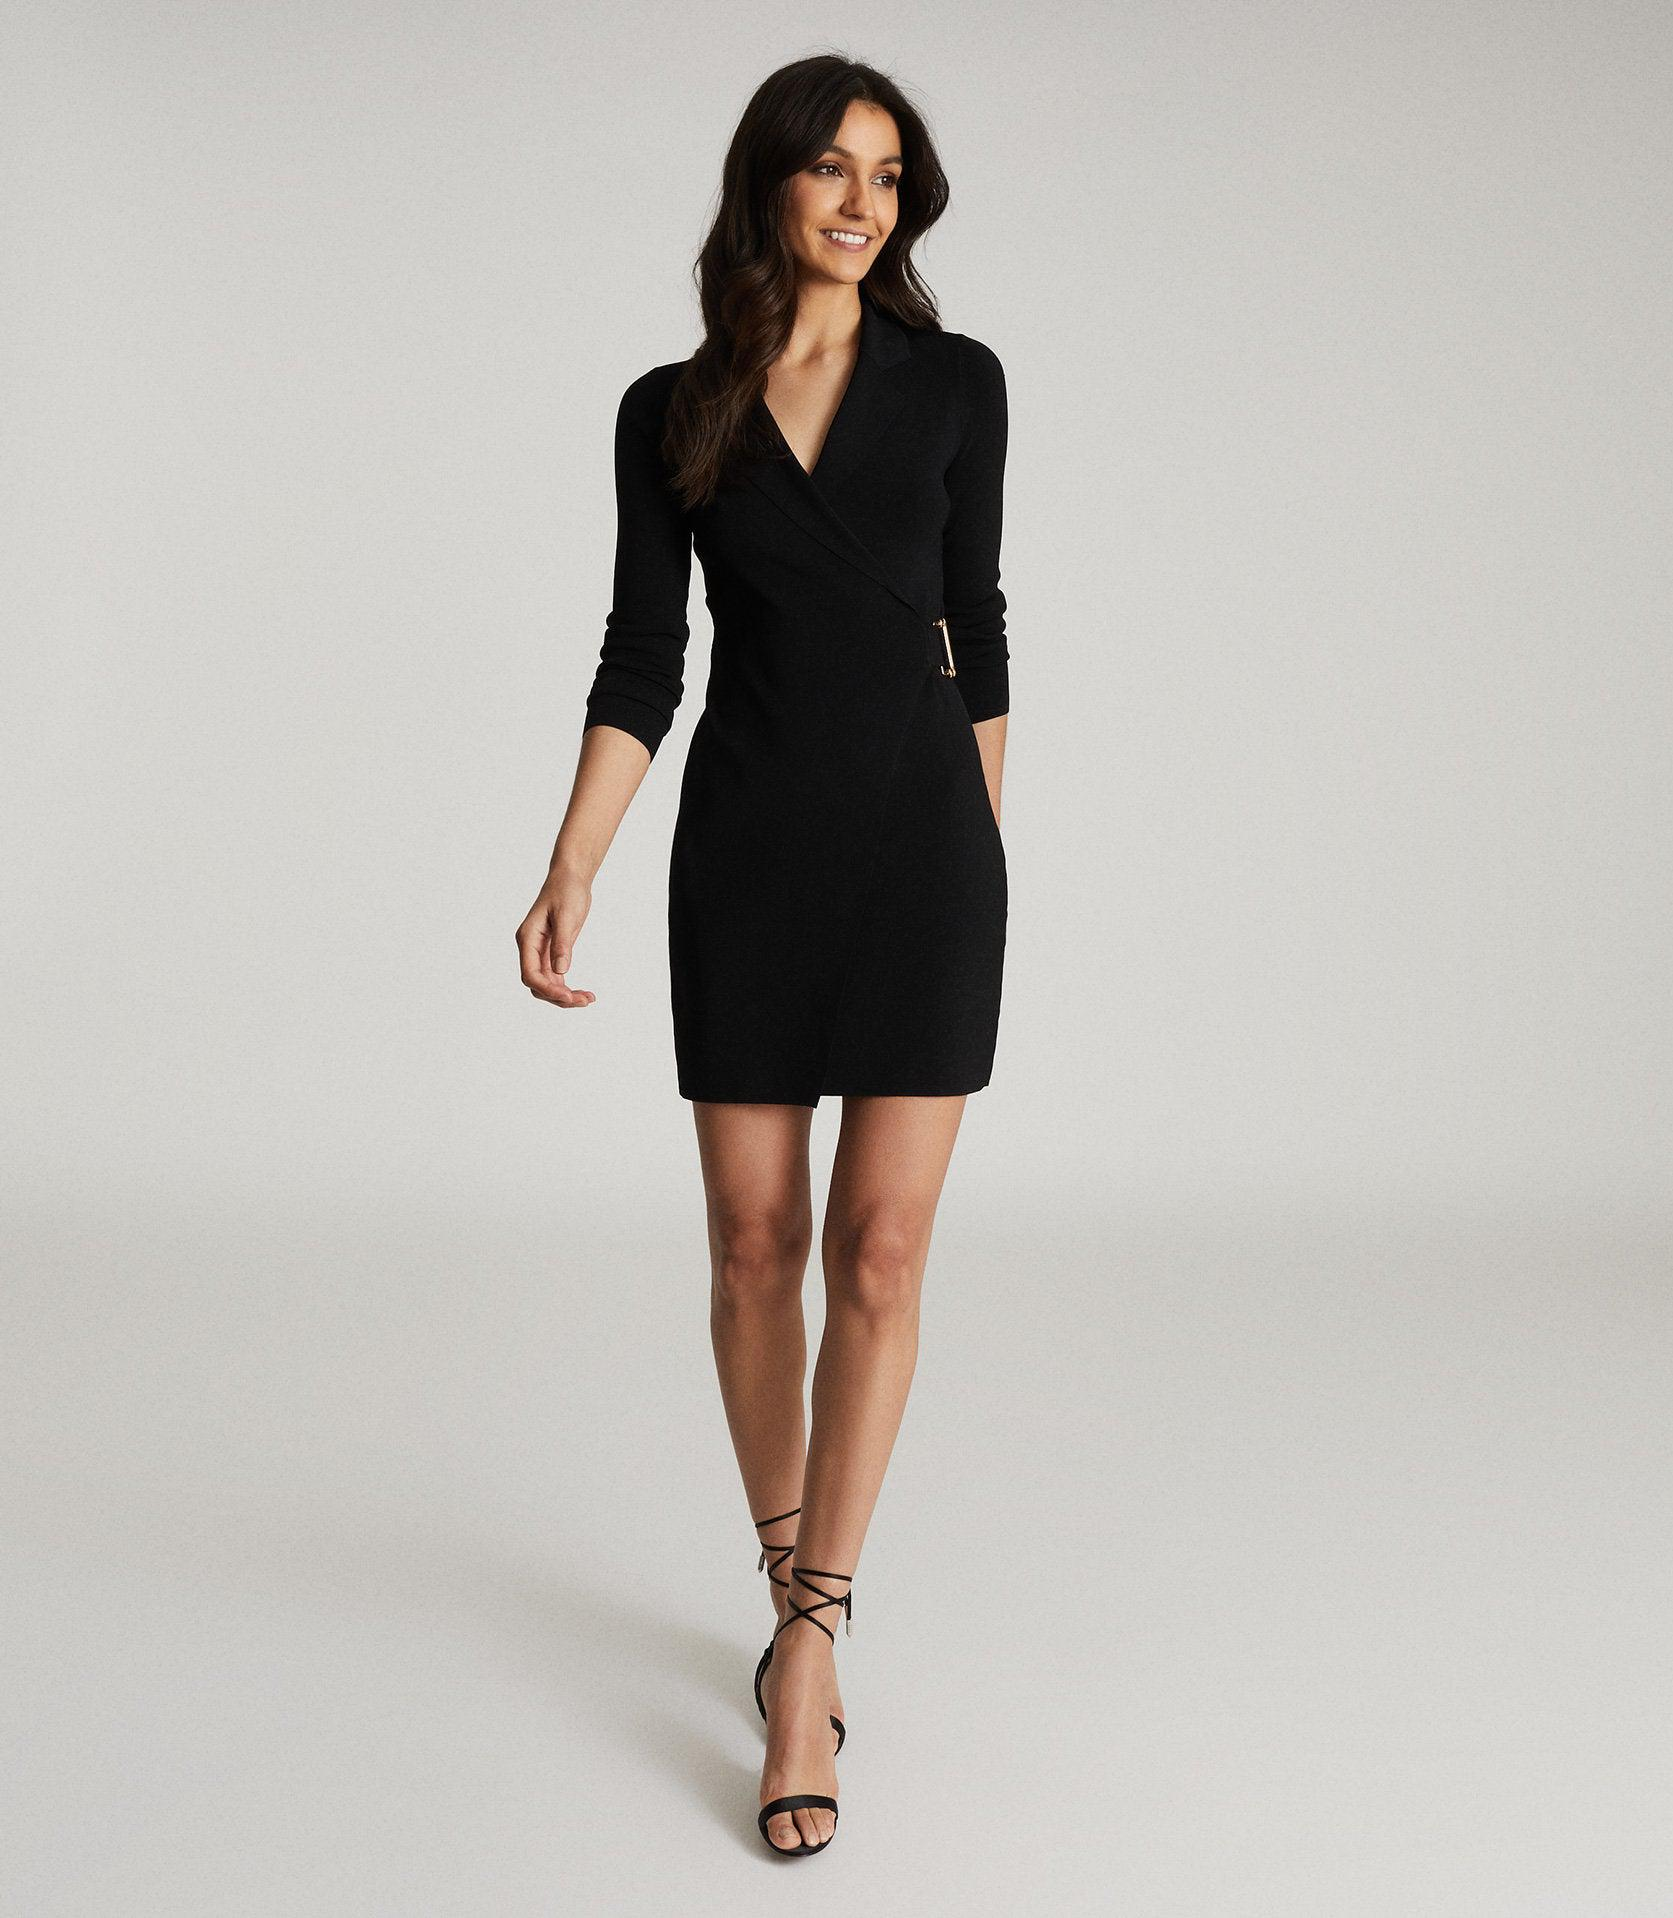 BRIANNA - KNITTED WRAP DRESS